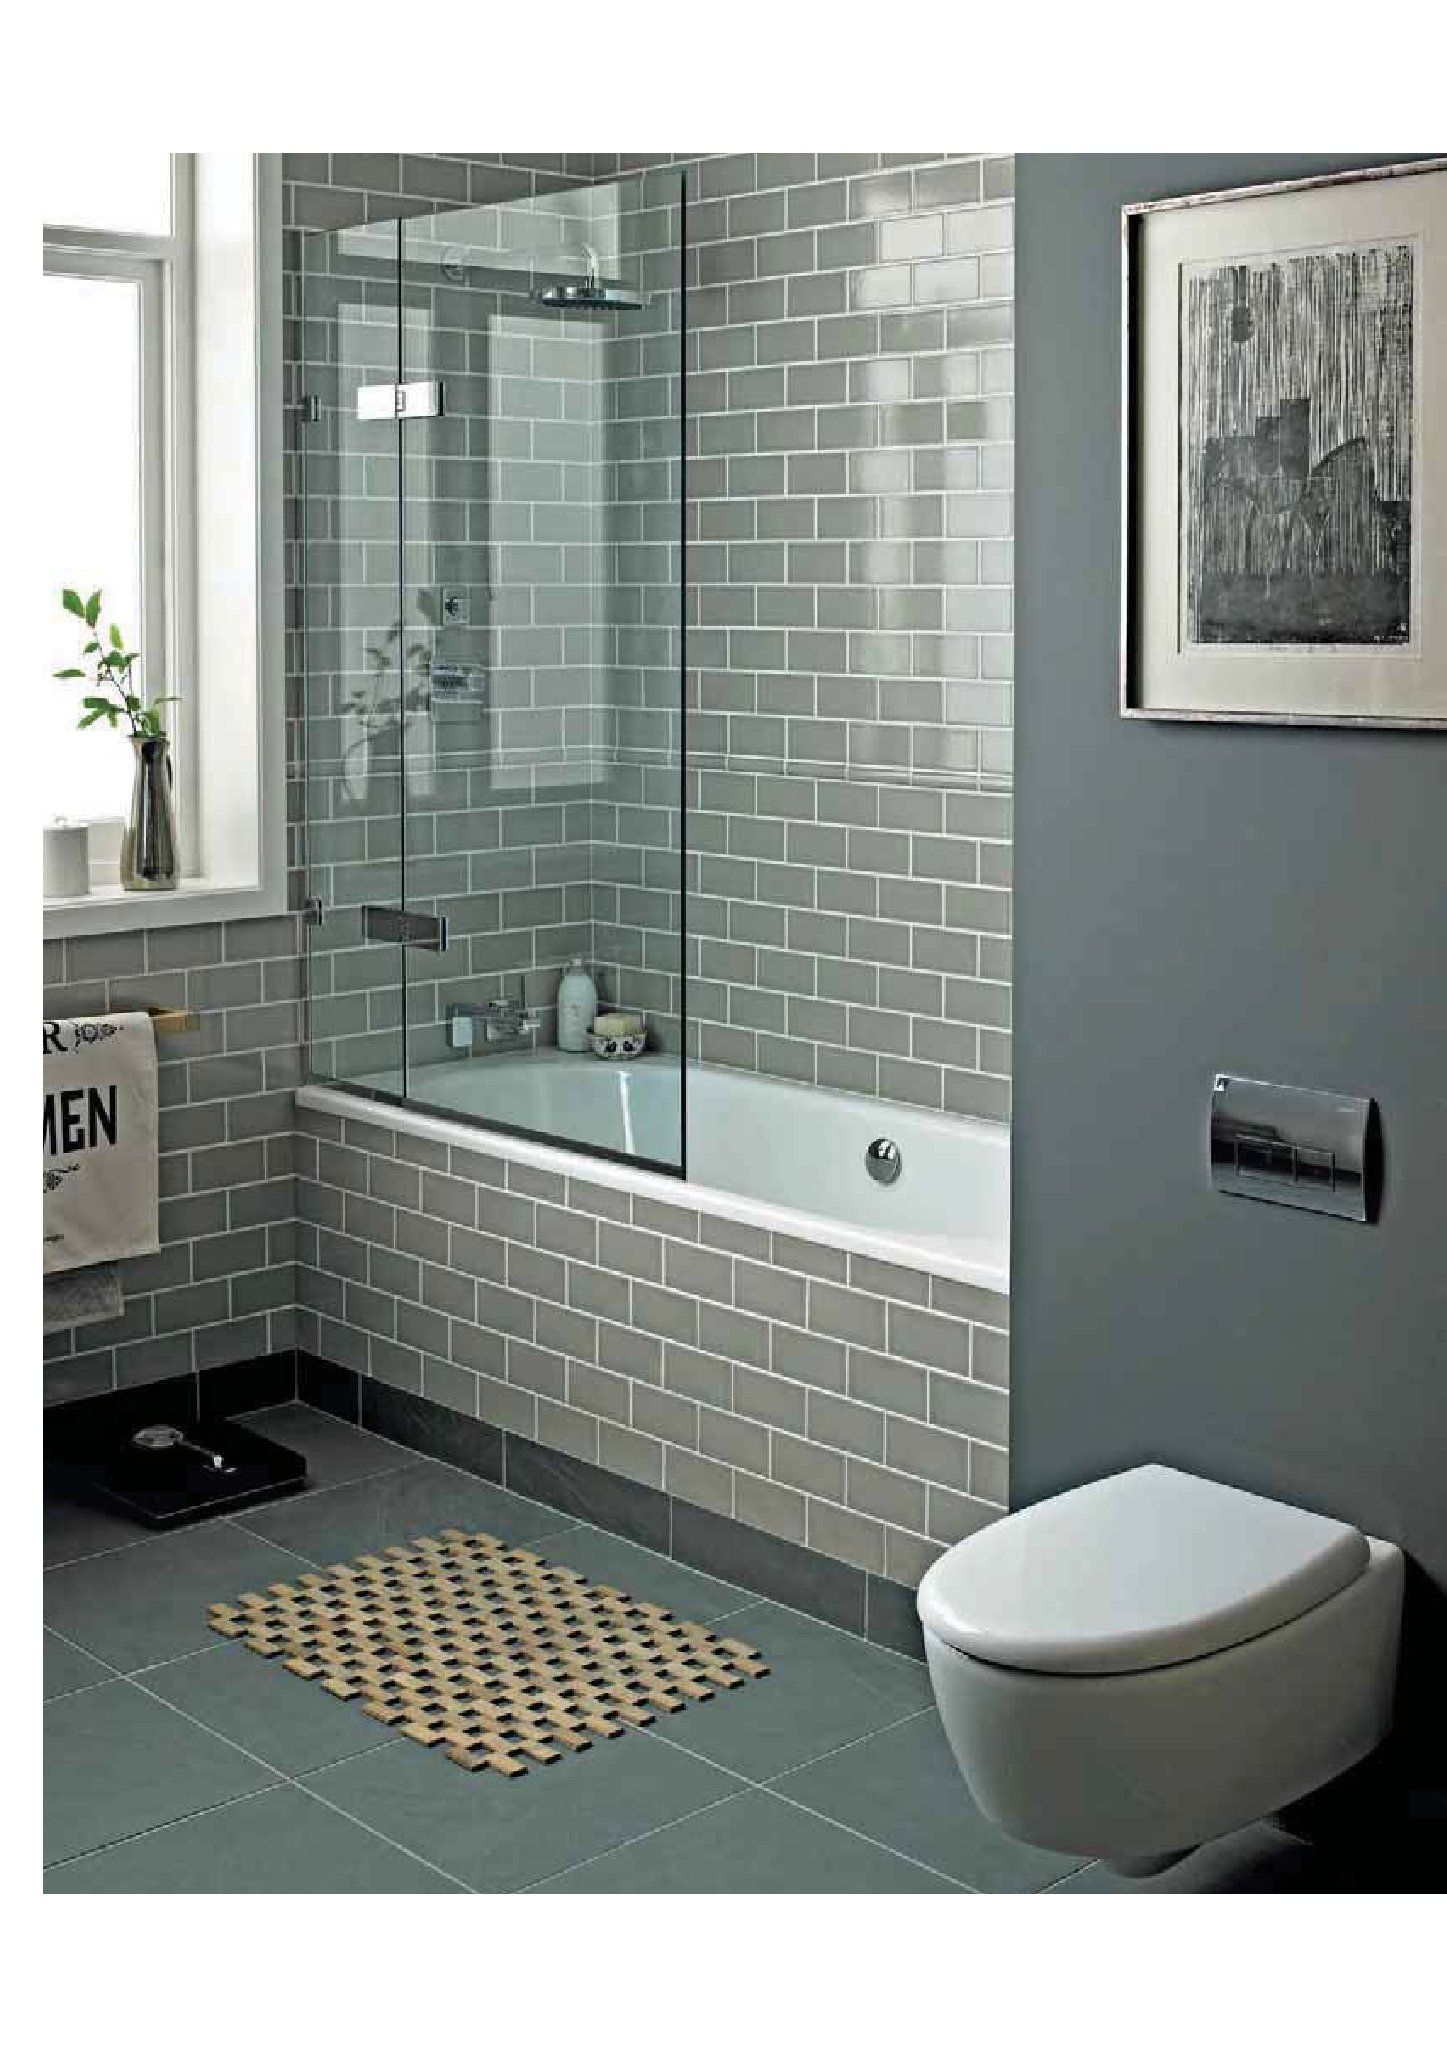 Smoke Grey Glass Subway Tiles Add A Spa Like Feel To This Tub/shower Combo  Bath.